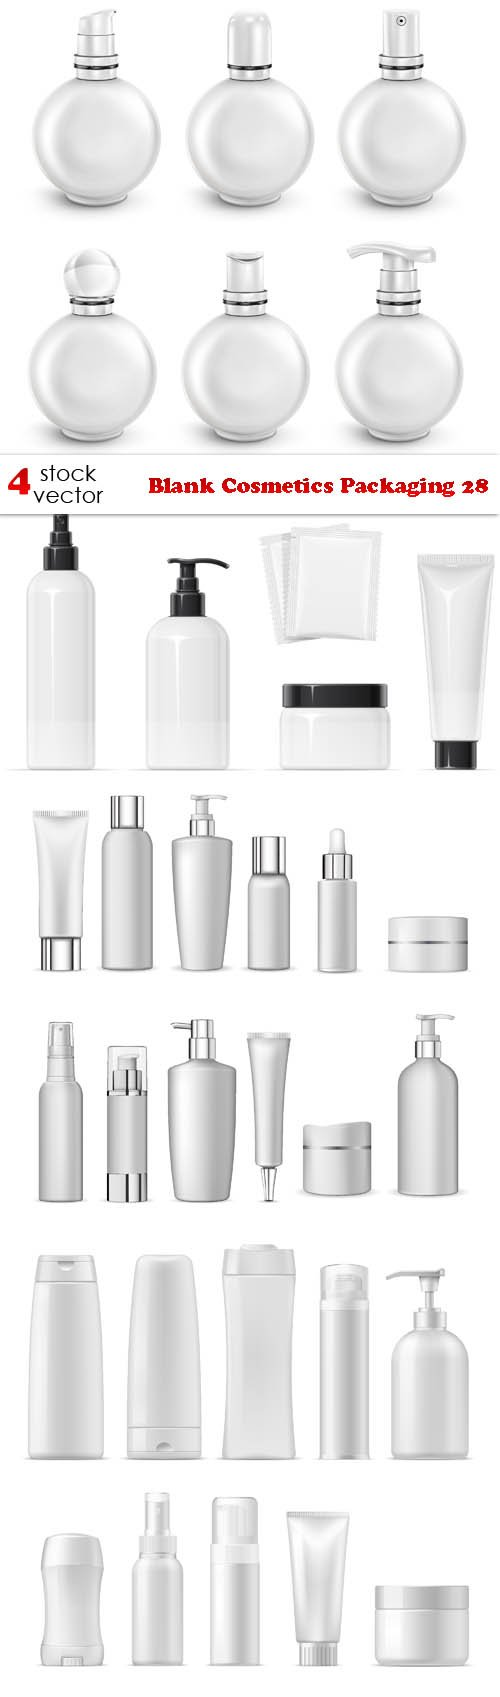 Vectors - Blank Cosmetics Packaging 28